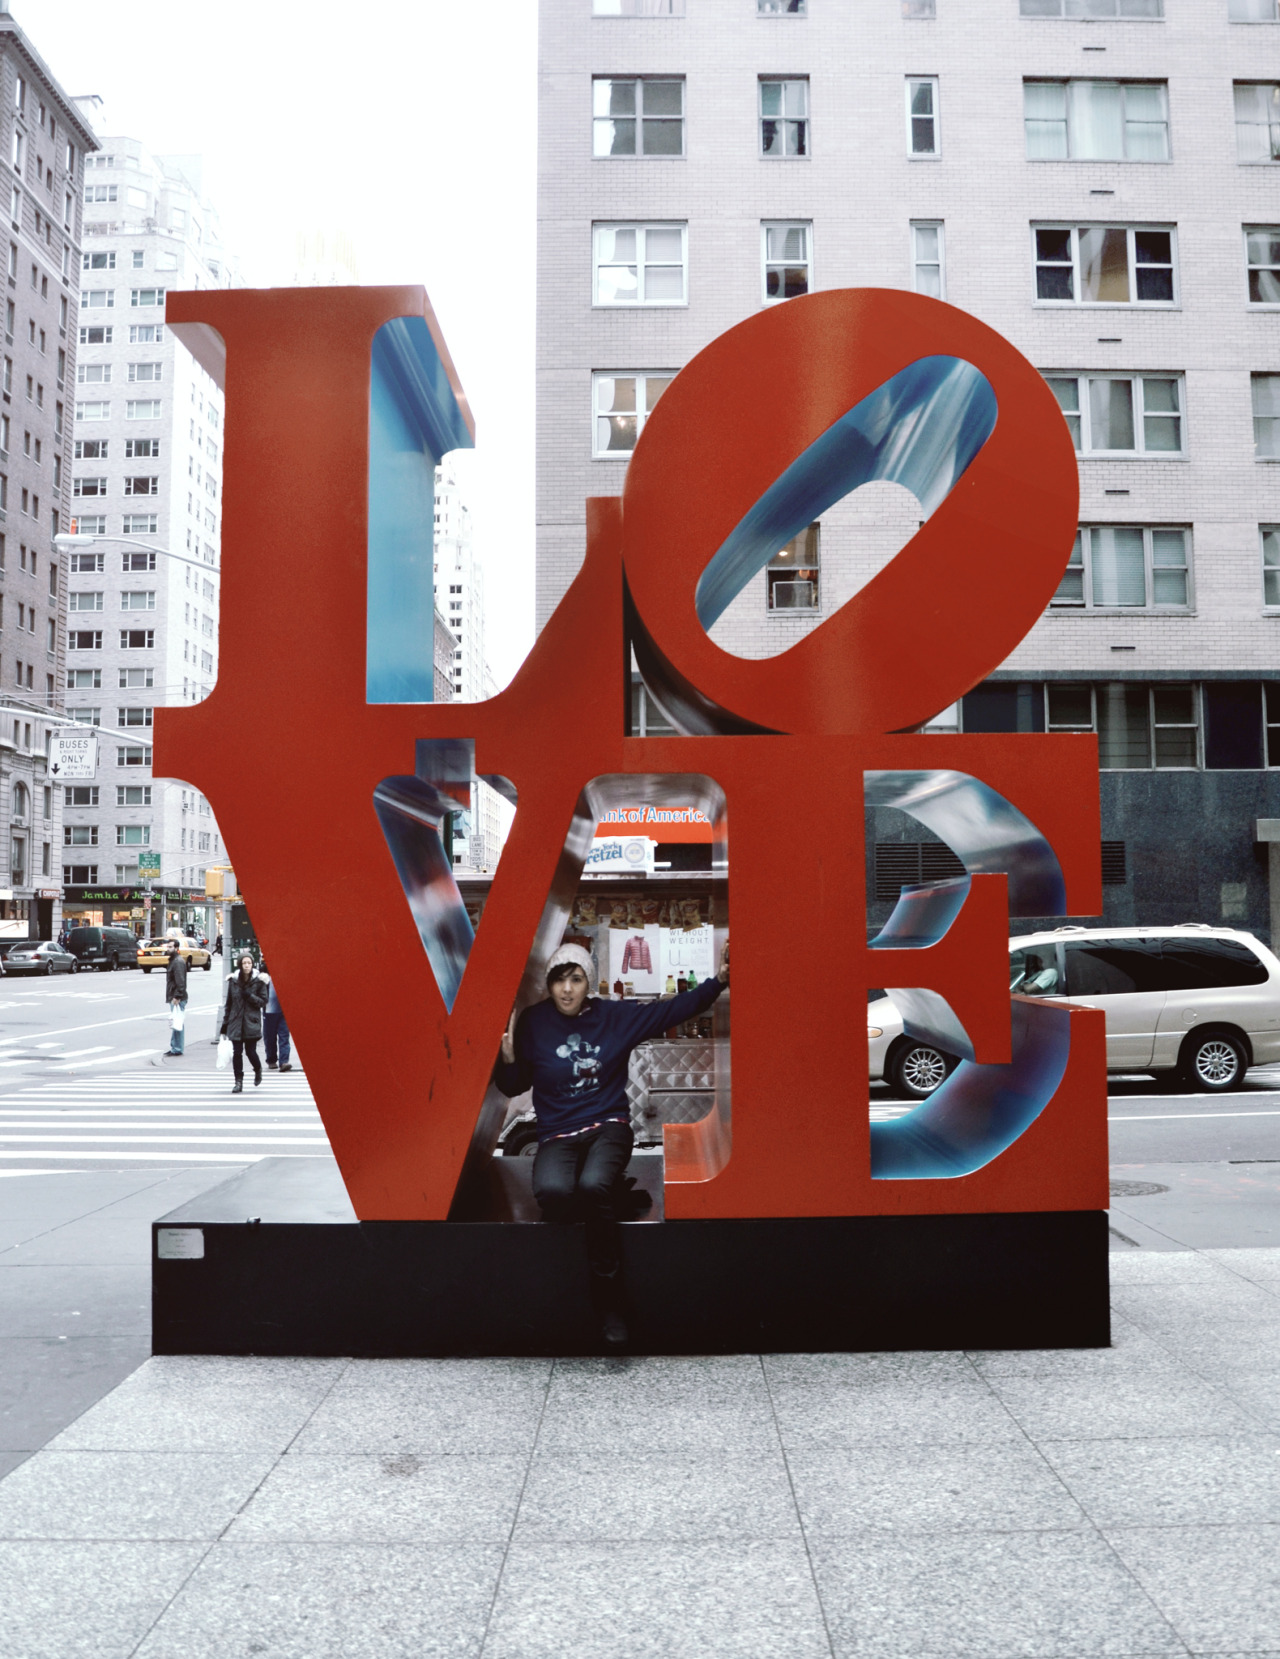 All you need is a little LOVE | Taken in New York city